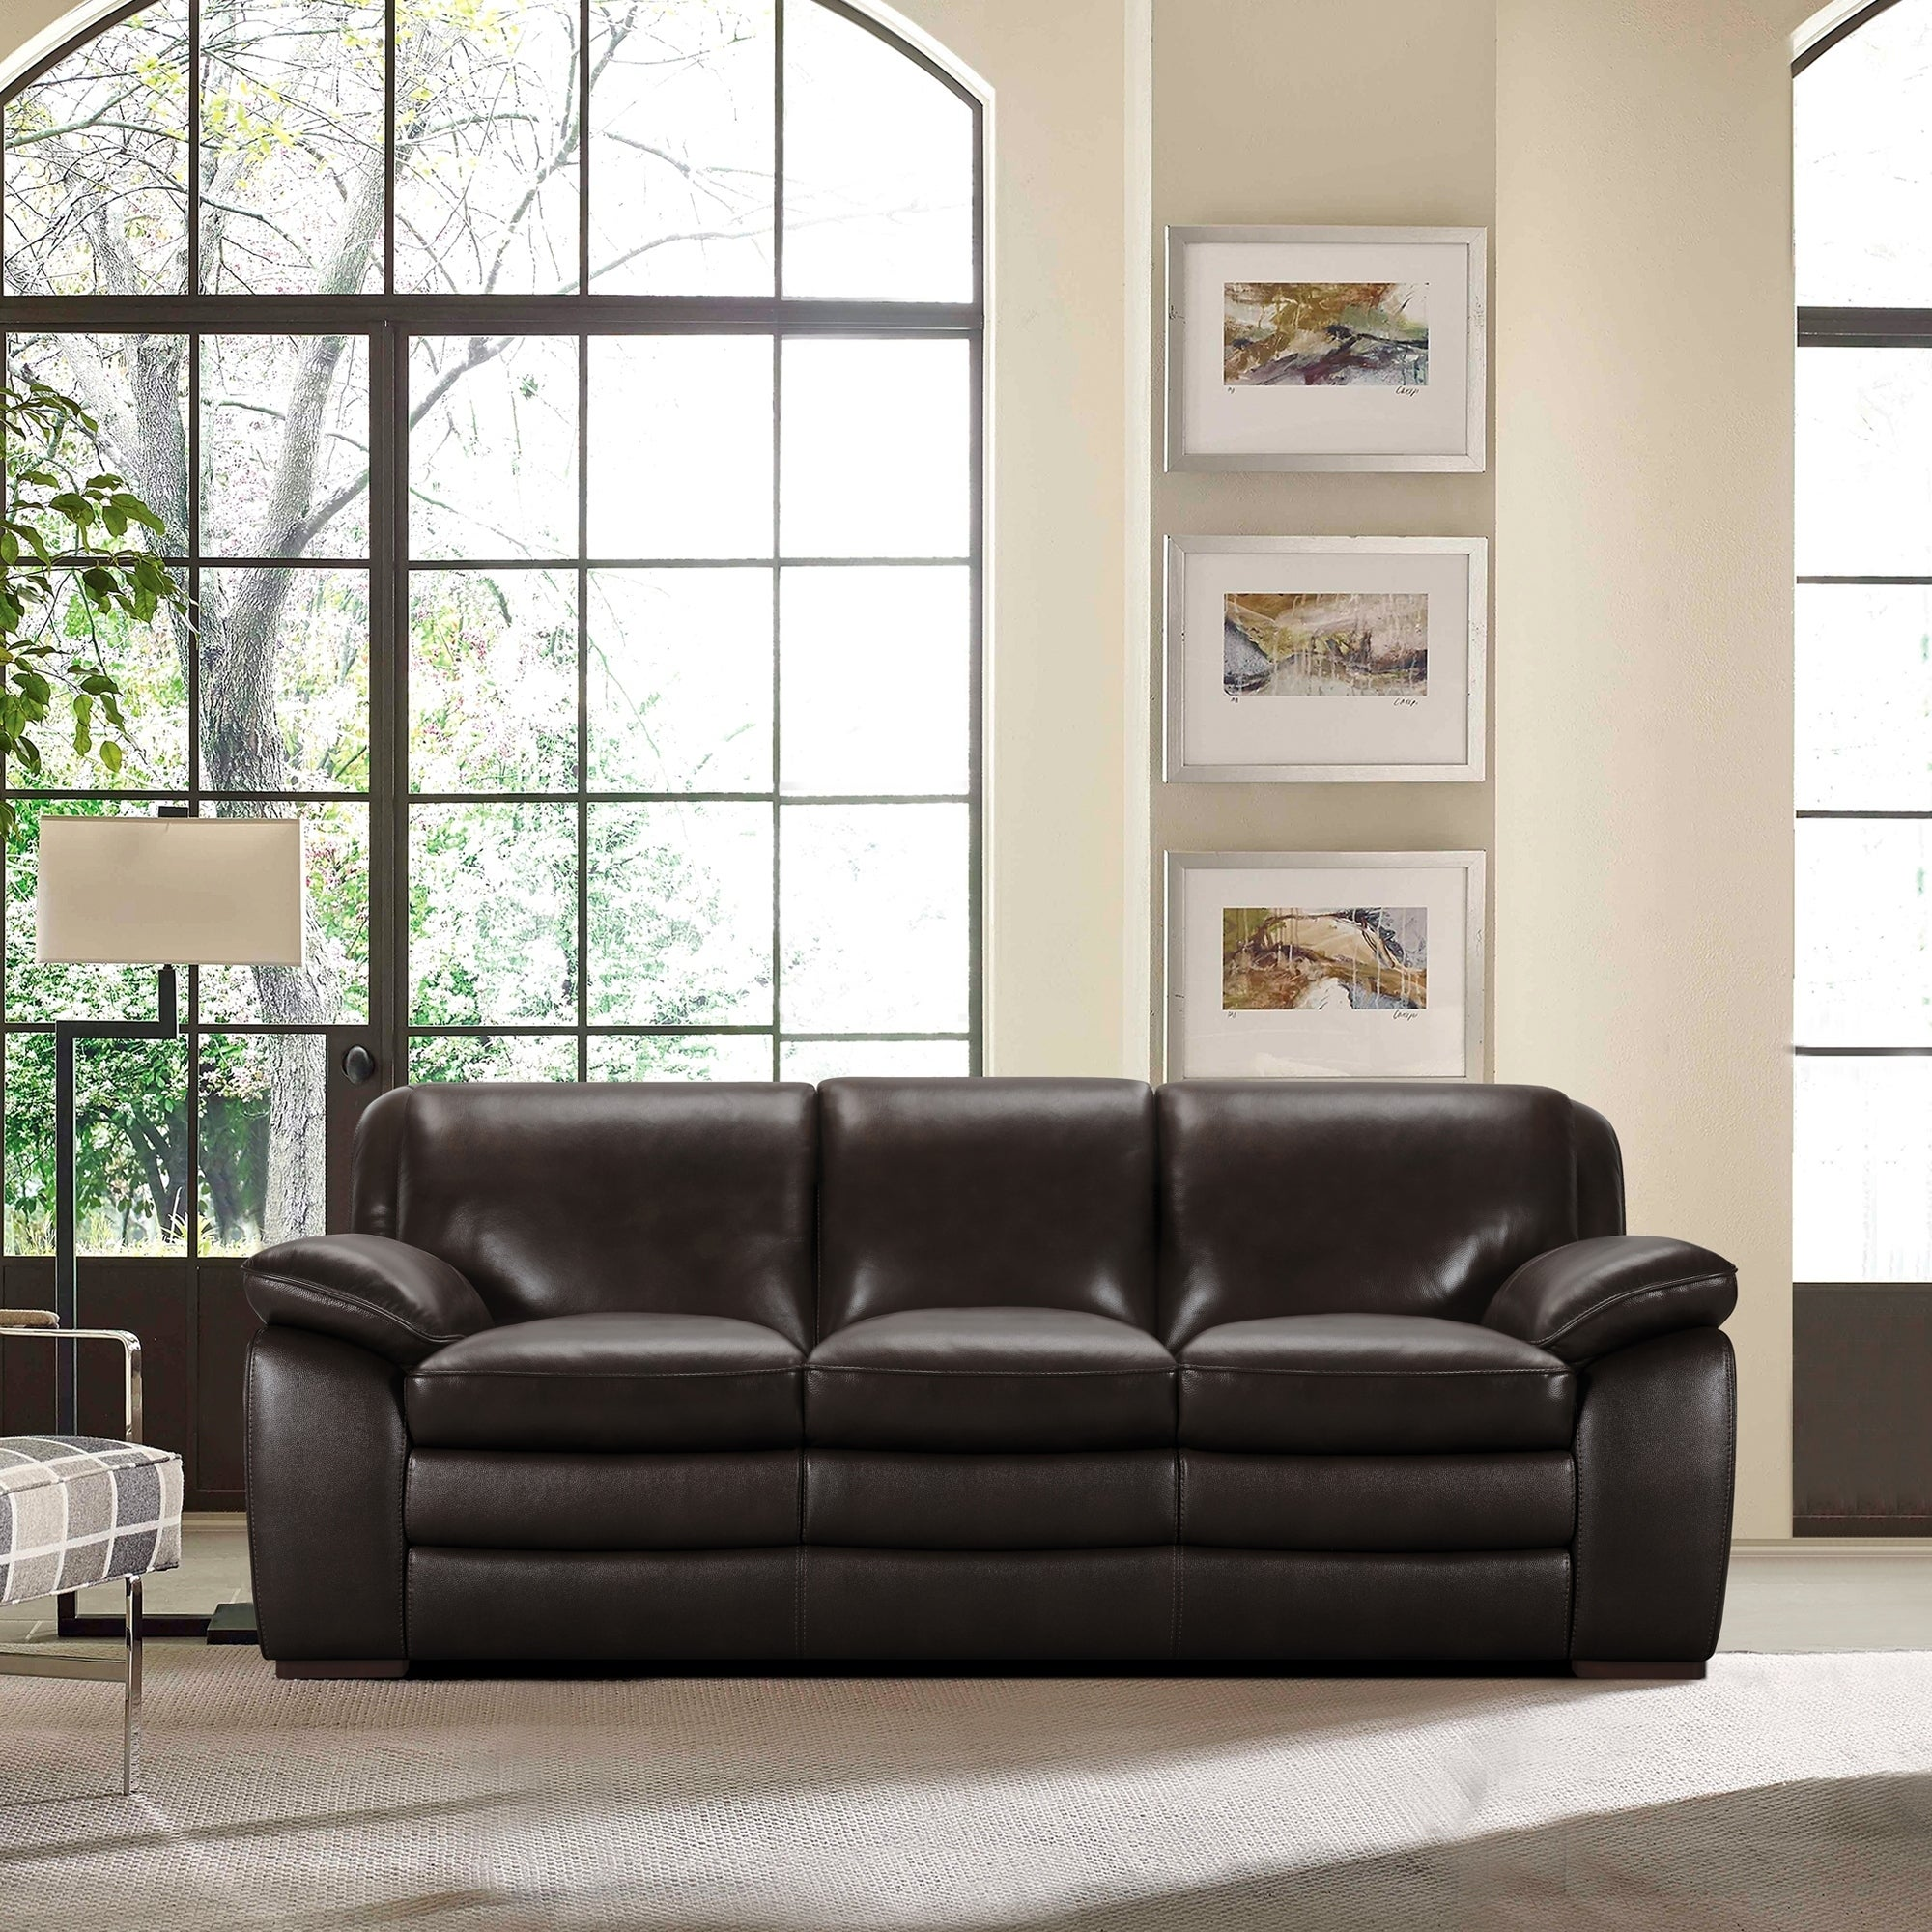 Armen Living Zanna Contemporary Sofa In Genuine Dark Brown Leather Free Shipping Today 19556358